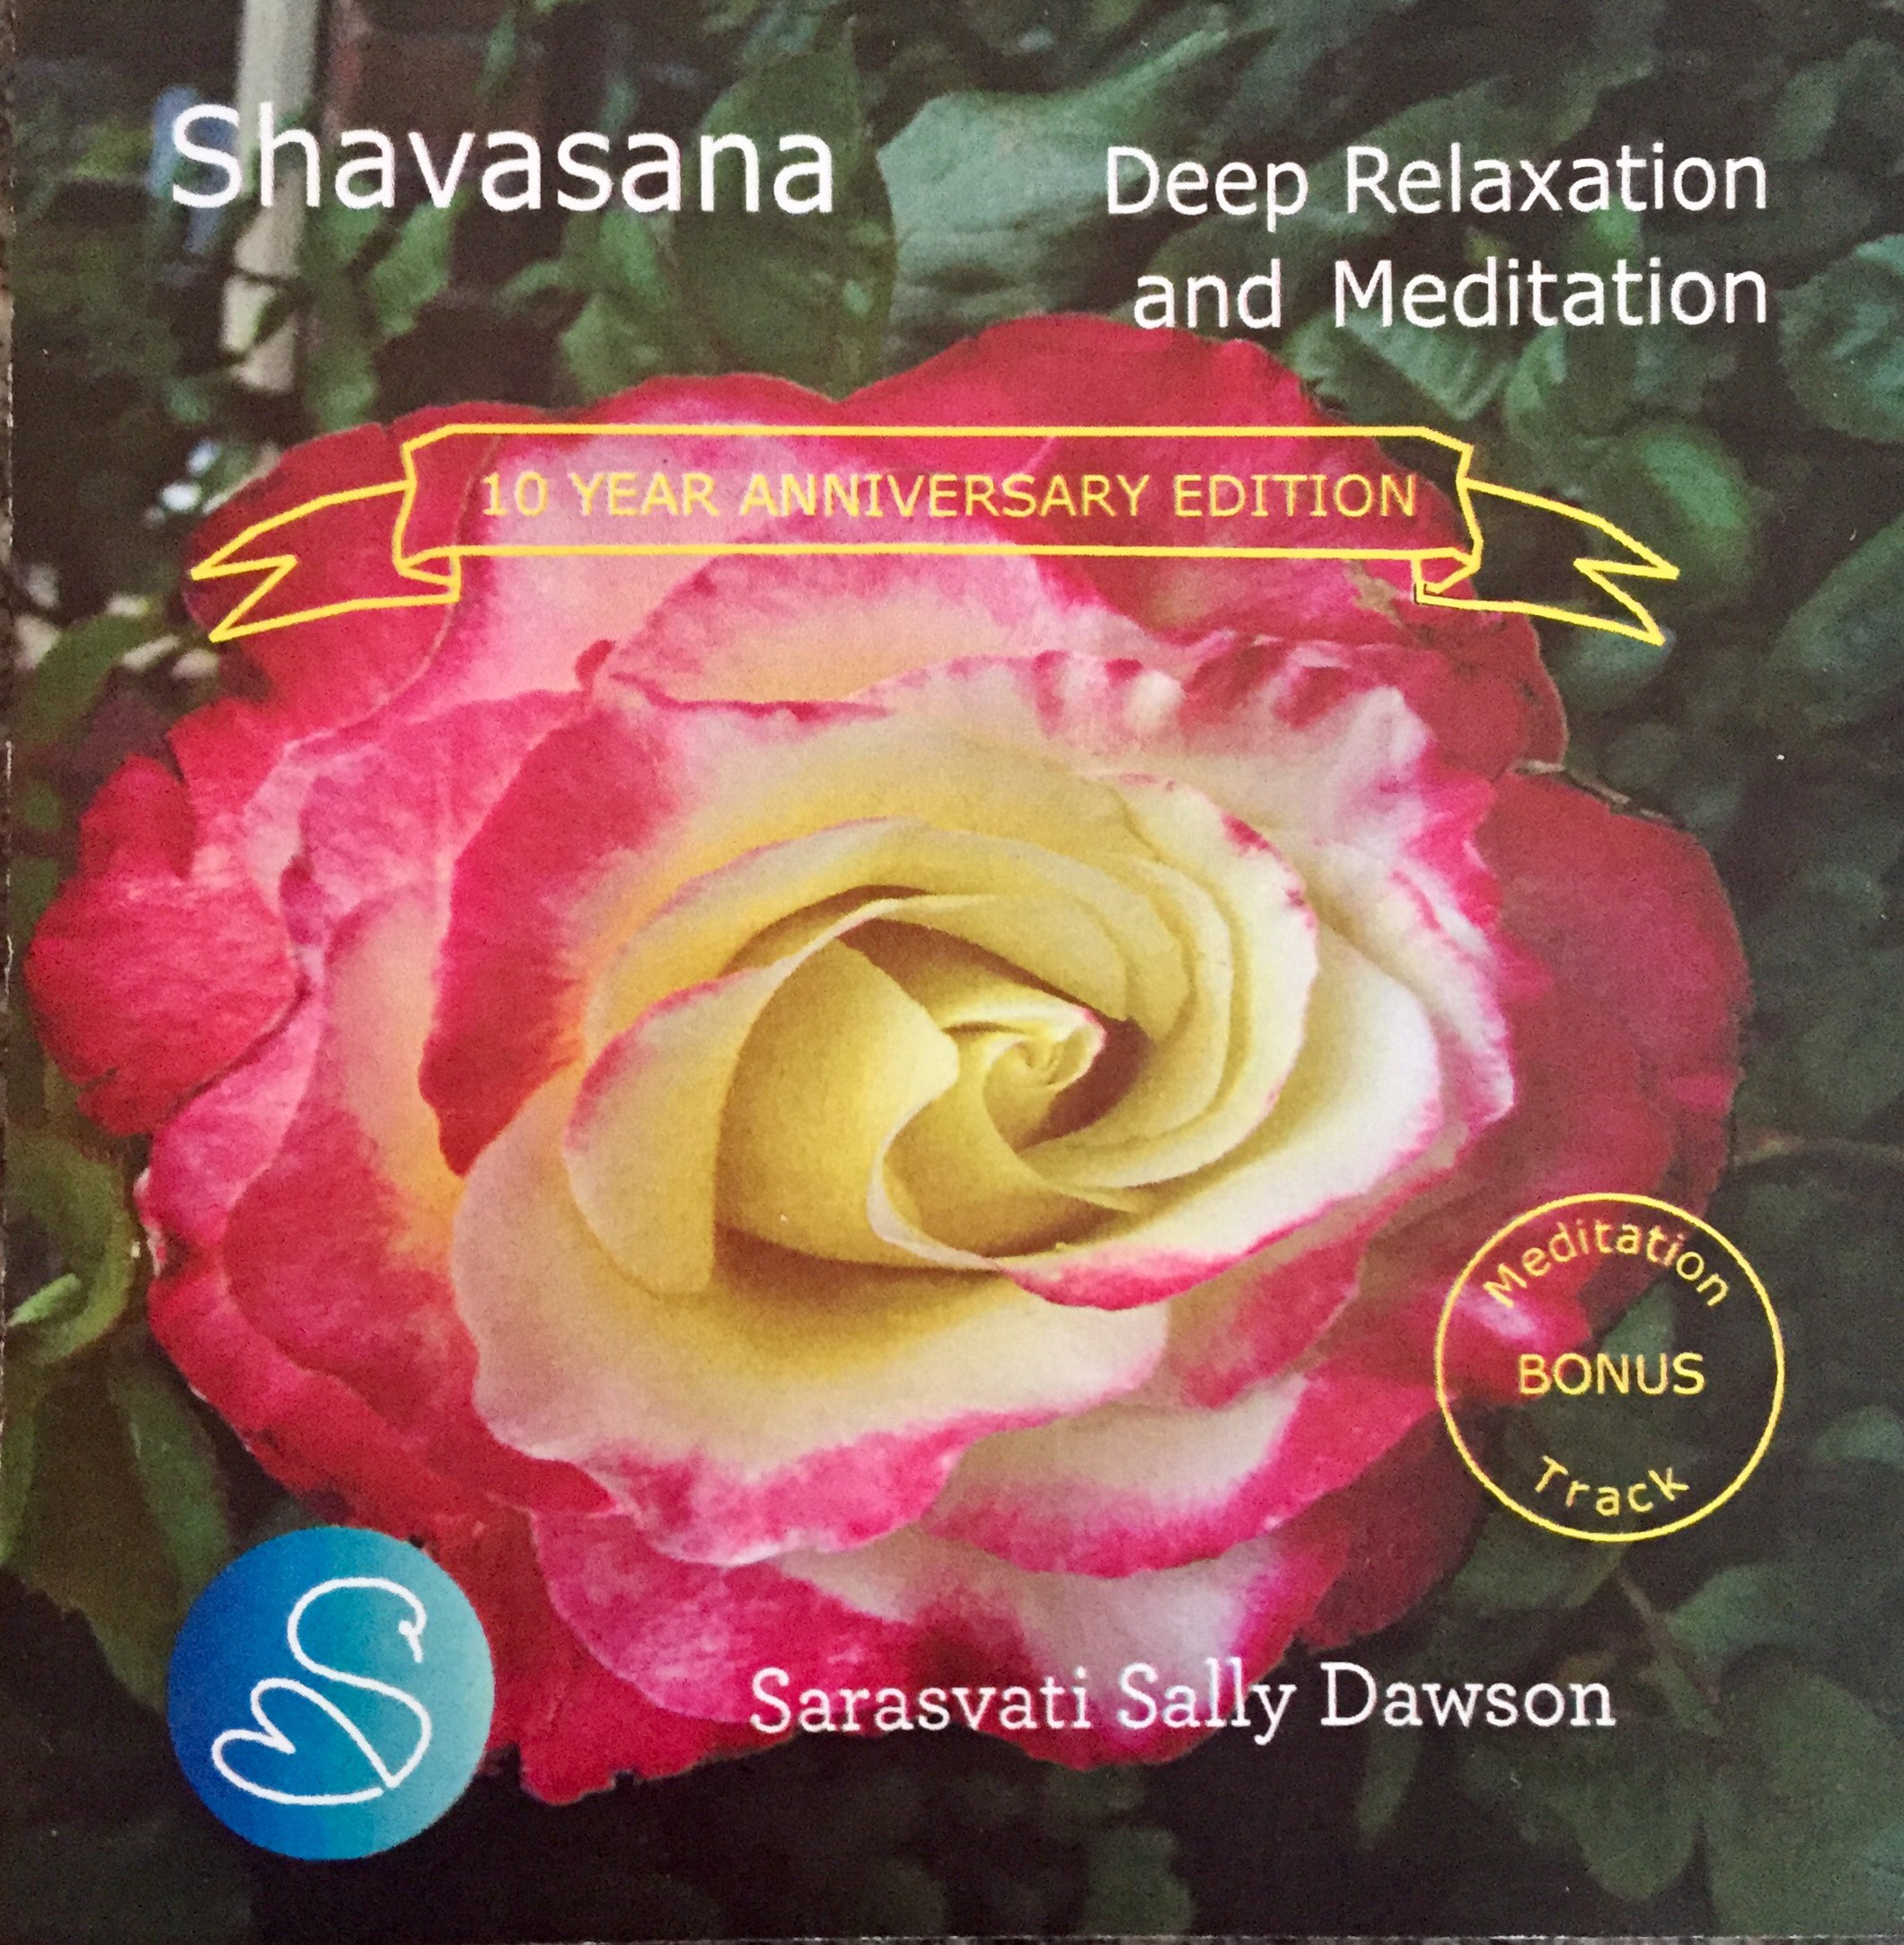 Shavasana Deep Relaxation and Meditation CD